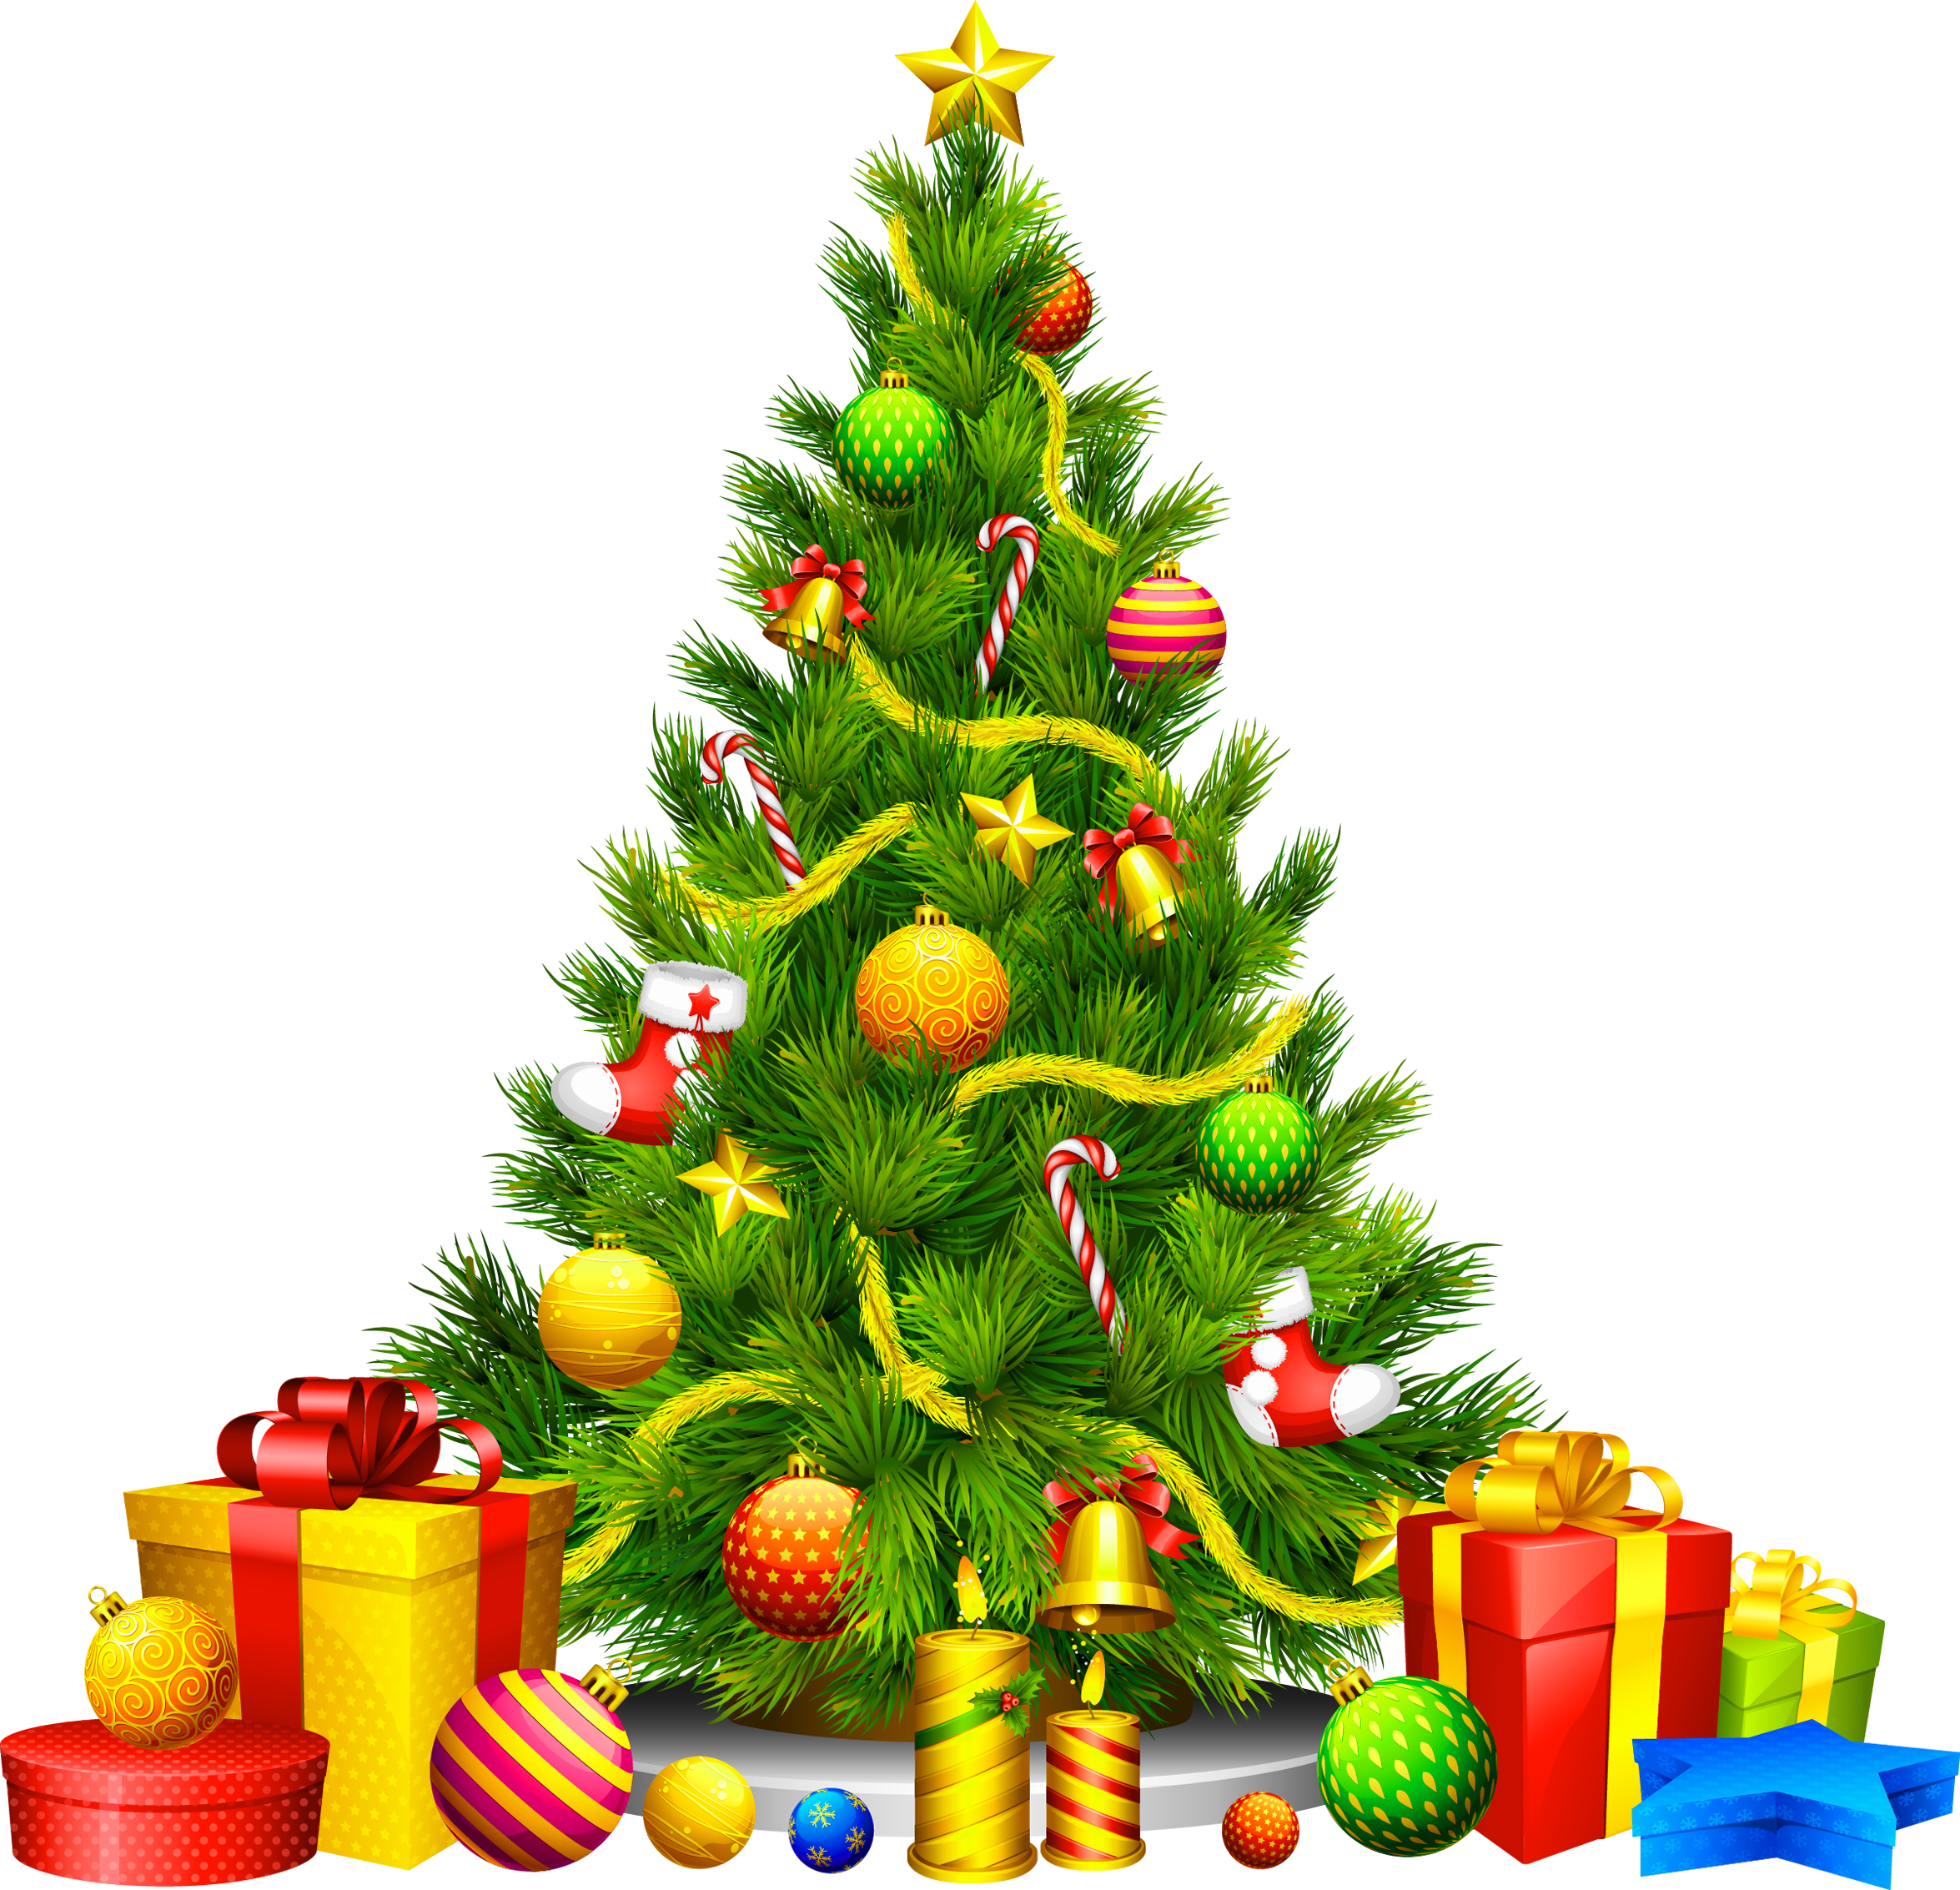 When Is It Appropriate To Start Listening To Christmas Music Christmas Tree Clipart Christmas Tree With Presents Christmas Tree Images